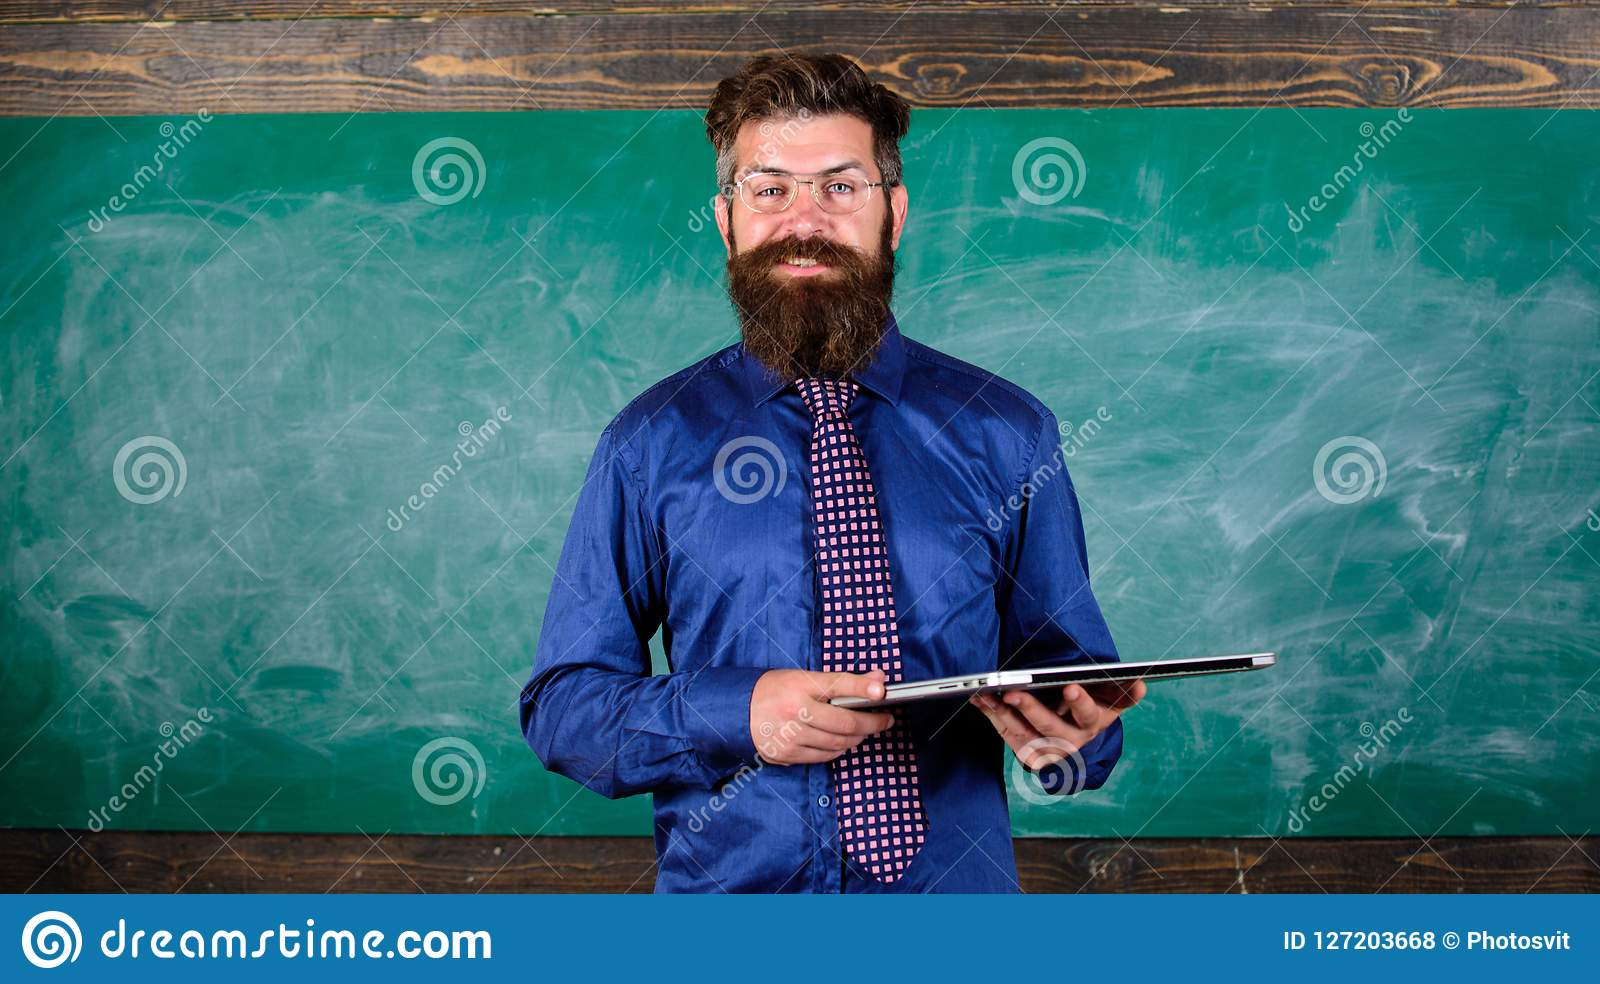 Start lesson. Teacher bearded man with modern laptop chalkboard background. Modern technology education. Hipster teacher